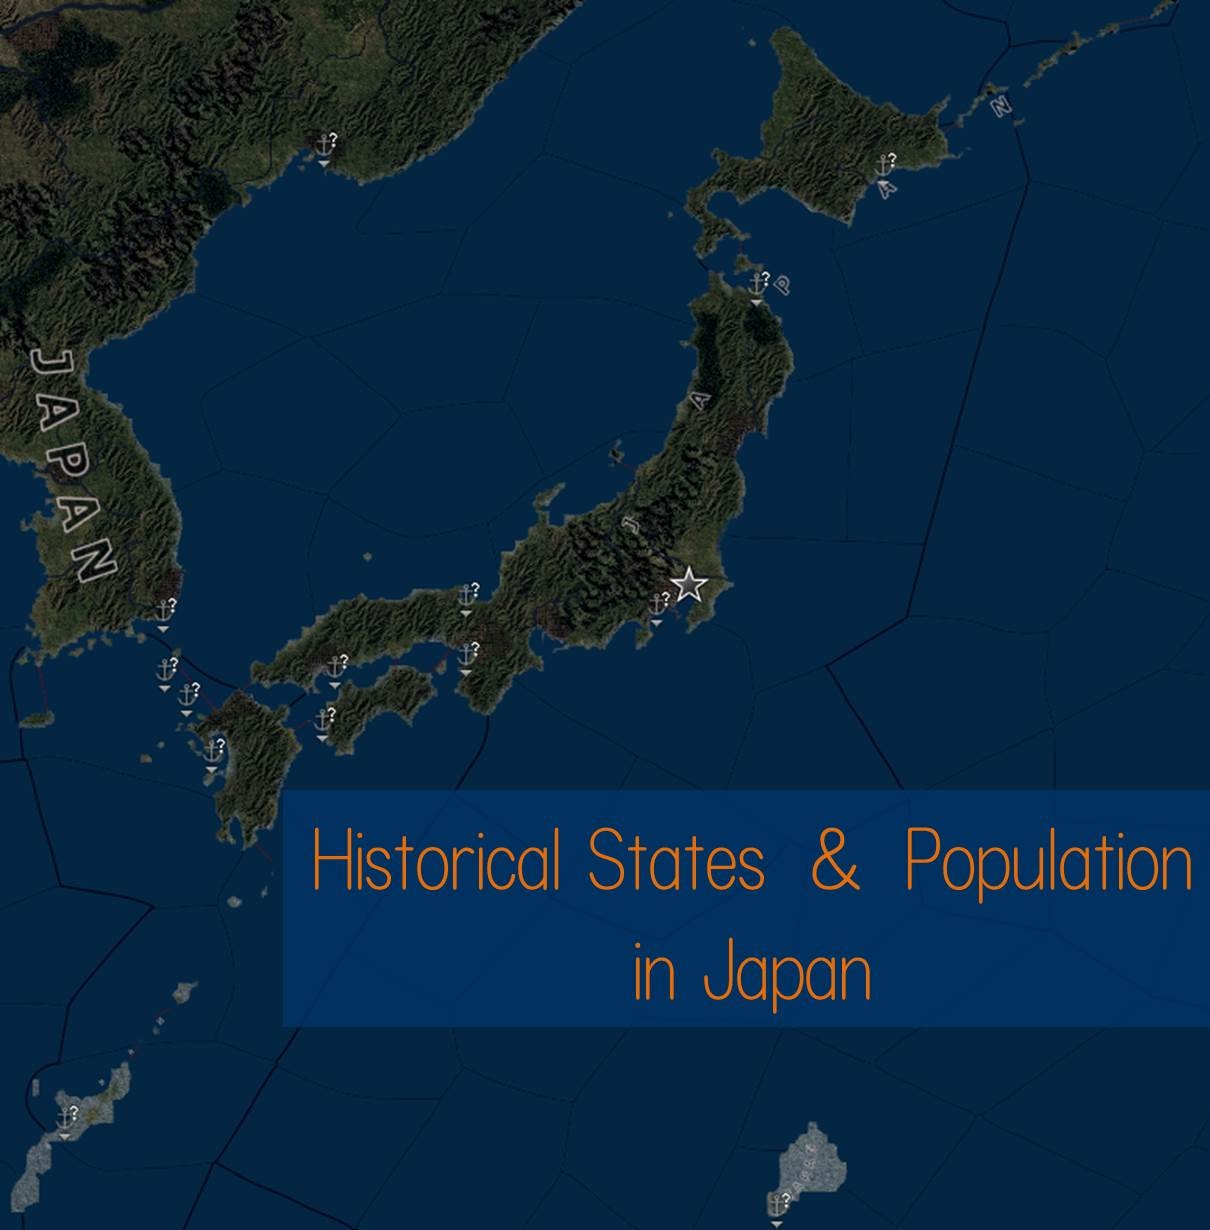 HoI4 [Mod] Historical States and Population in Japan 歴史に